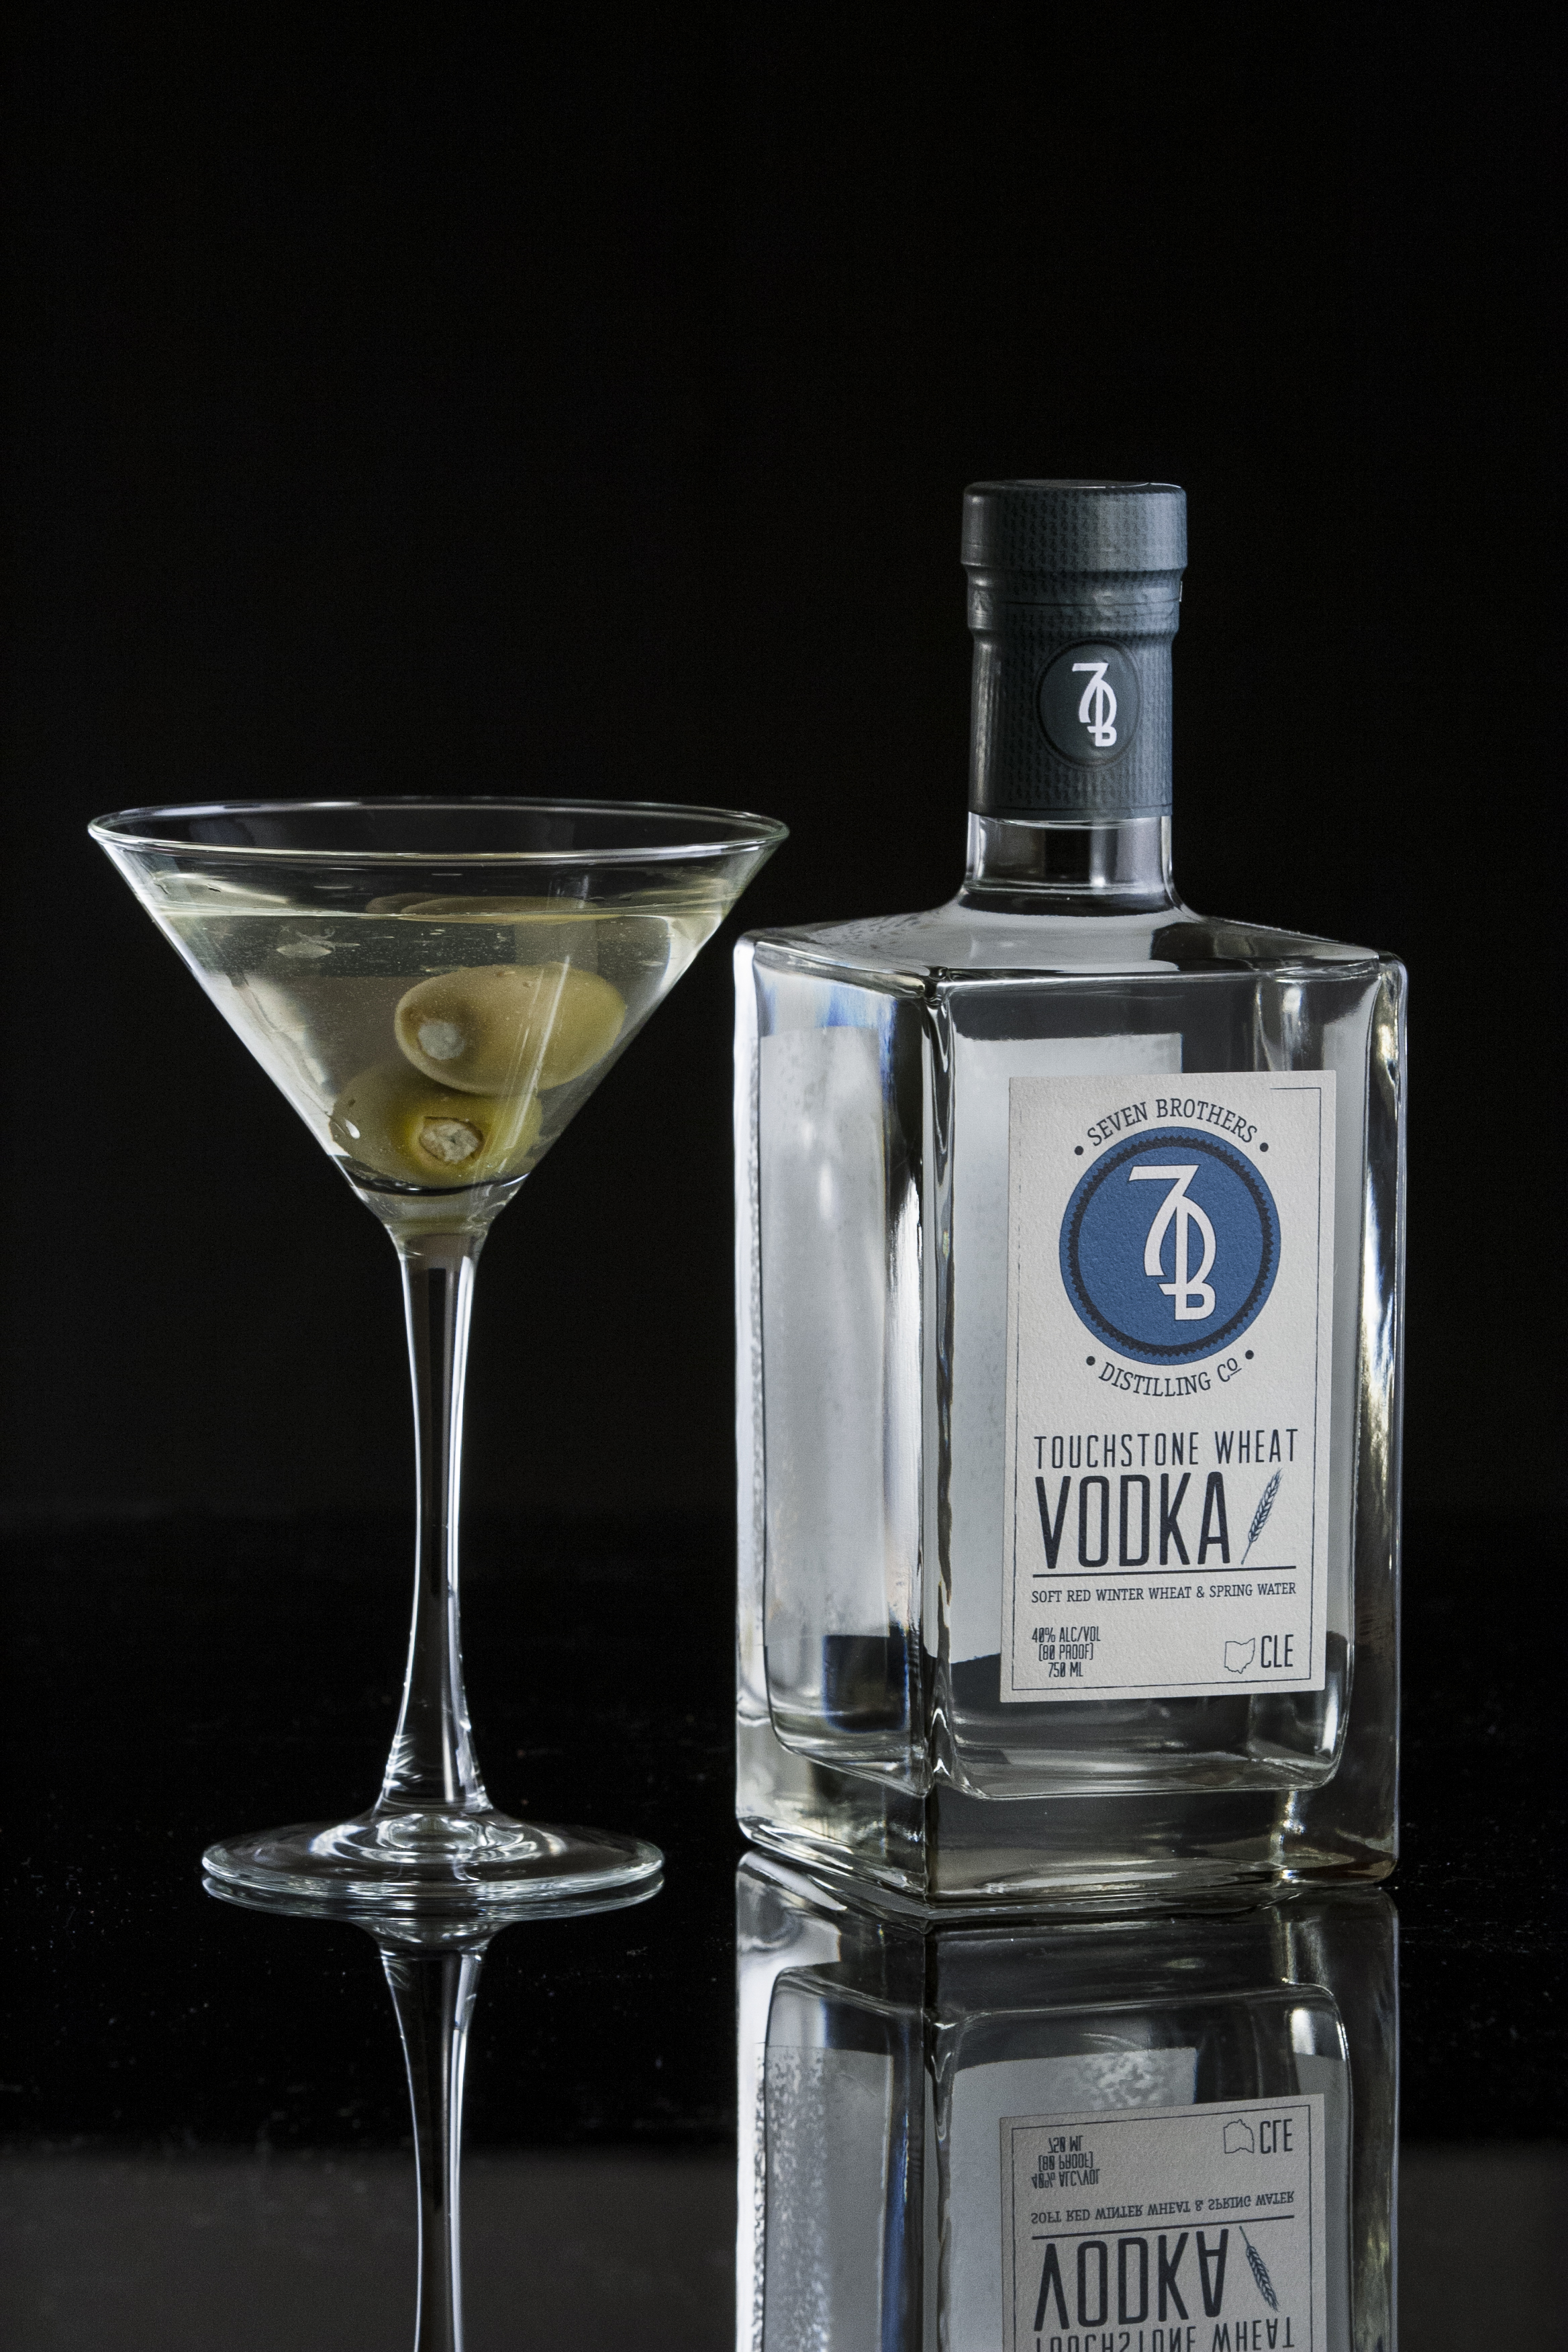 DIRTY 7B MARTINI - 3 oz Seven Brothers Touchstone Wheat Vodka.5 oz Dry Vermouth (Dolin).5 oz Olive Brine2-3 OlivesShake ingredients over ice and strain into a Martini glass. Garnish with 2-3 olives.